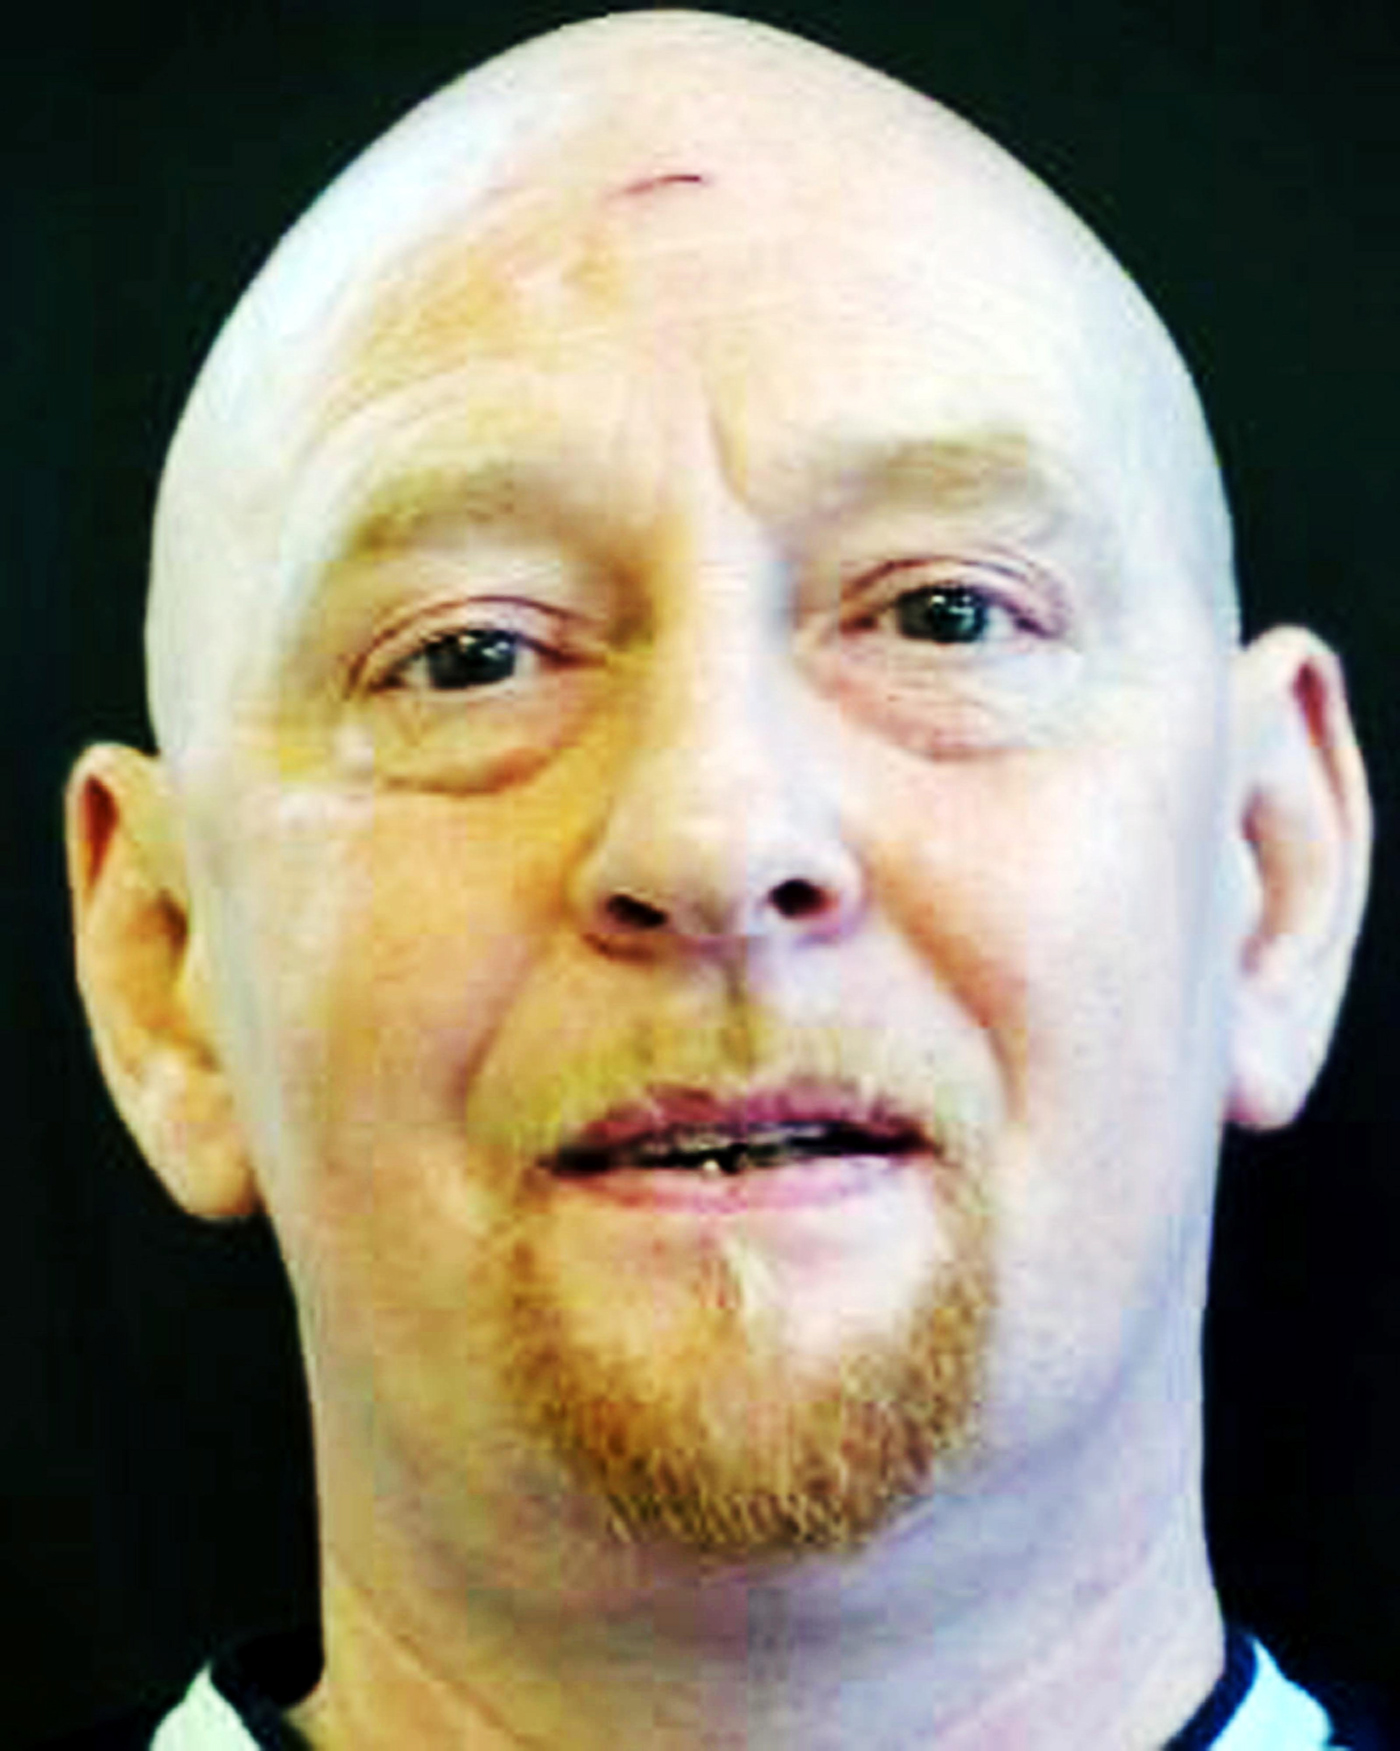 Minister pledges overhaul on licence system as East Lancs robber caught